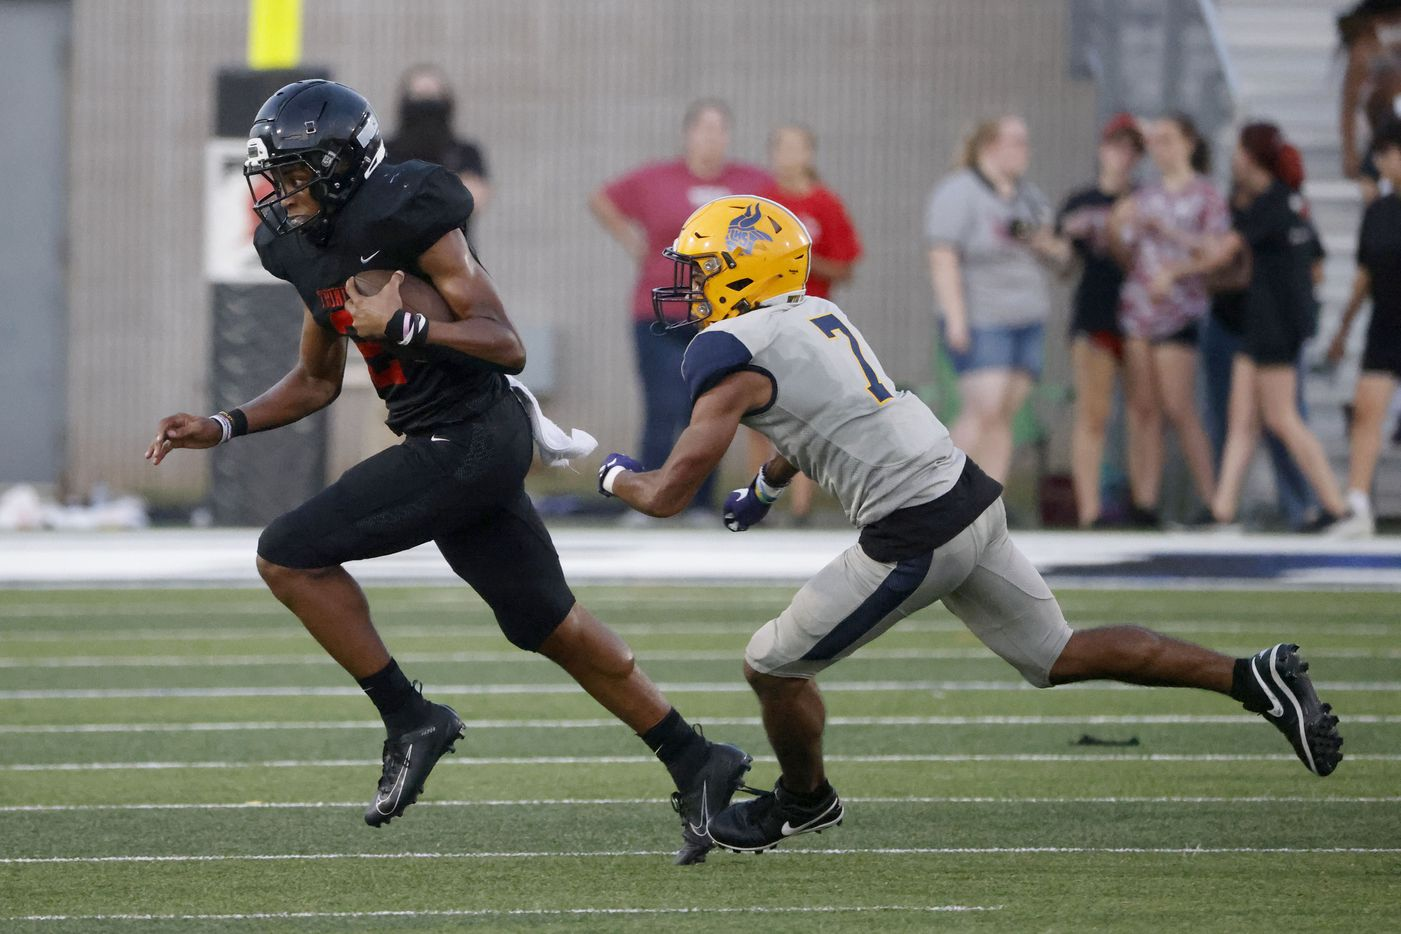 Trinity quarterback  Ollie Gordon (2) runs away from Arlington Lamar defender Lonnell Cunningham (7) during a first half of their high school football game in Bedford, Texas on Aug. 26, 2021. (Michael Ainsworth/Special Contributor)